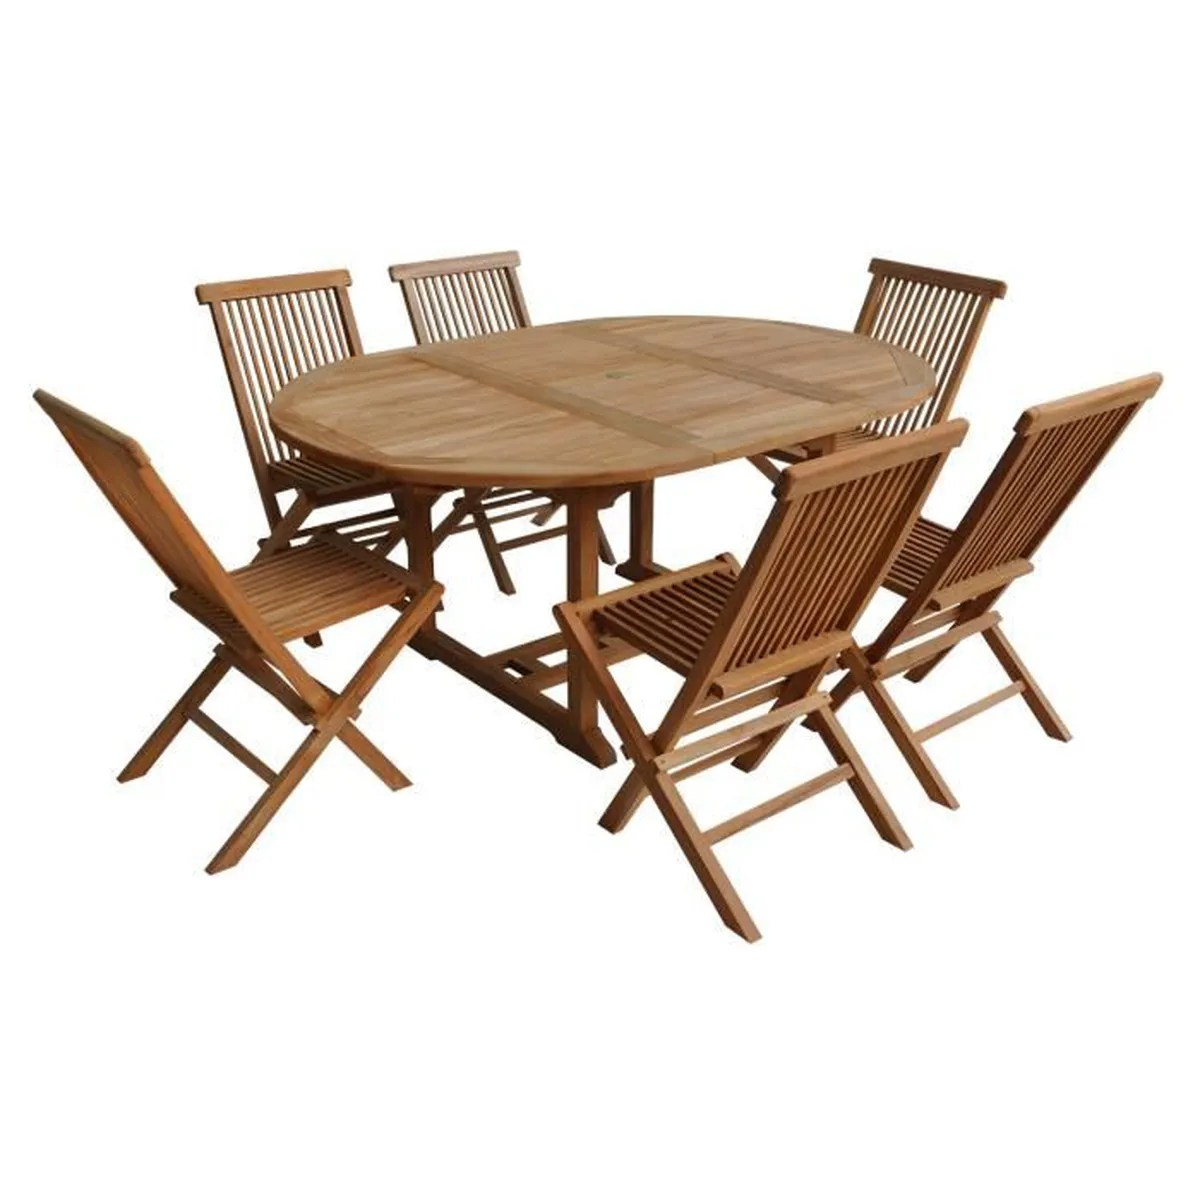 Salon Bas De Jardin En Teck Salon De Jardin Lombok Table Extensible Ronde En Teck 6 Places Marron Marron